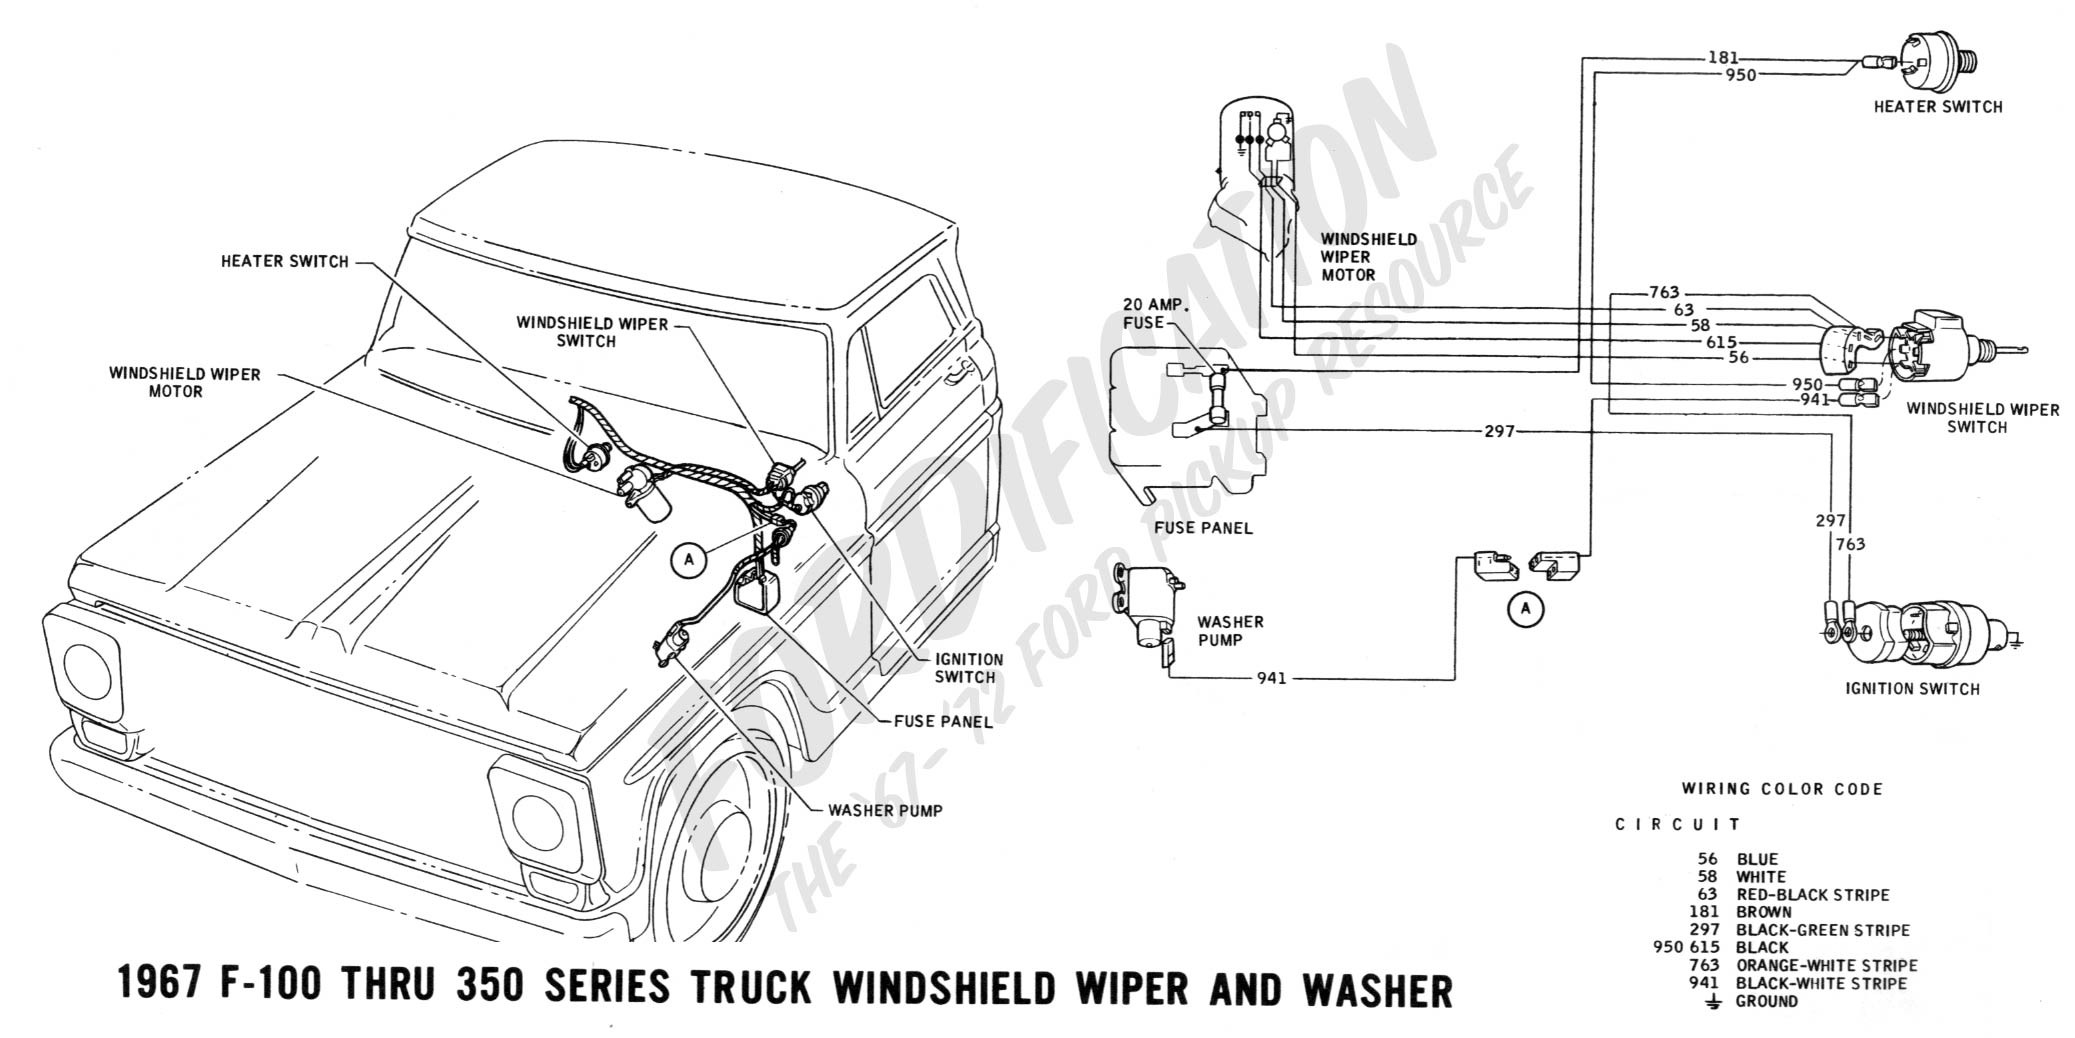 2001 ford Explorer Engine Diagram ford Truck Technical Drawings and Schematics Section H Wiring Of 2001 ford Explorer Engine Diagram